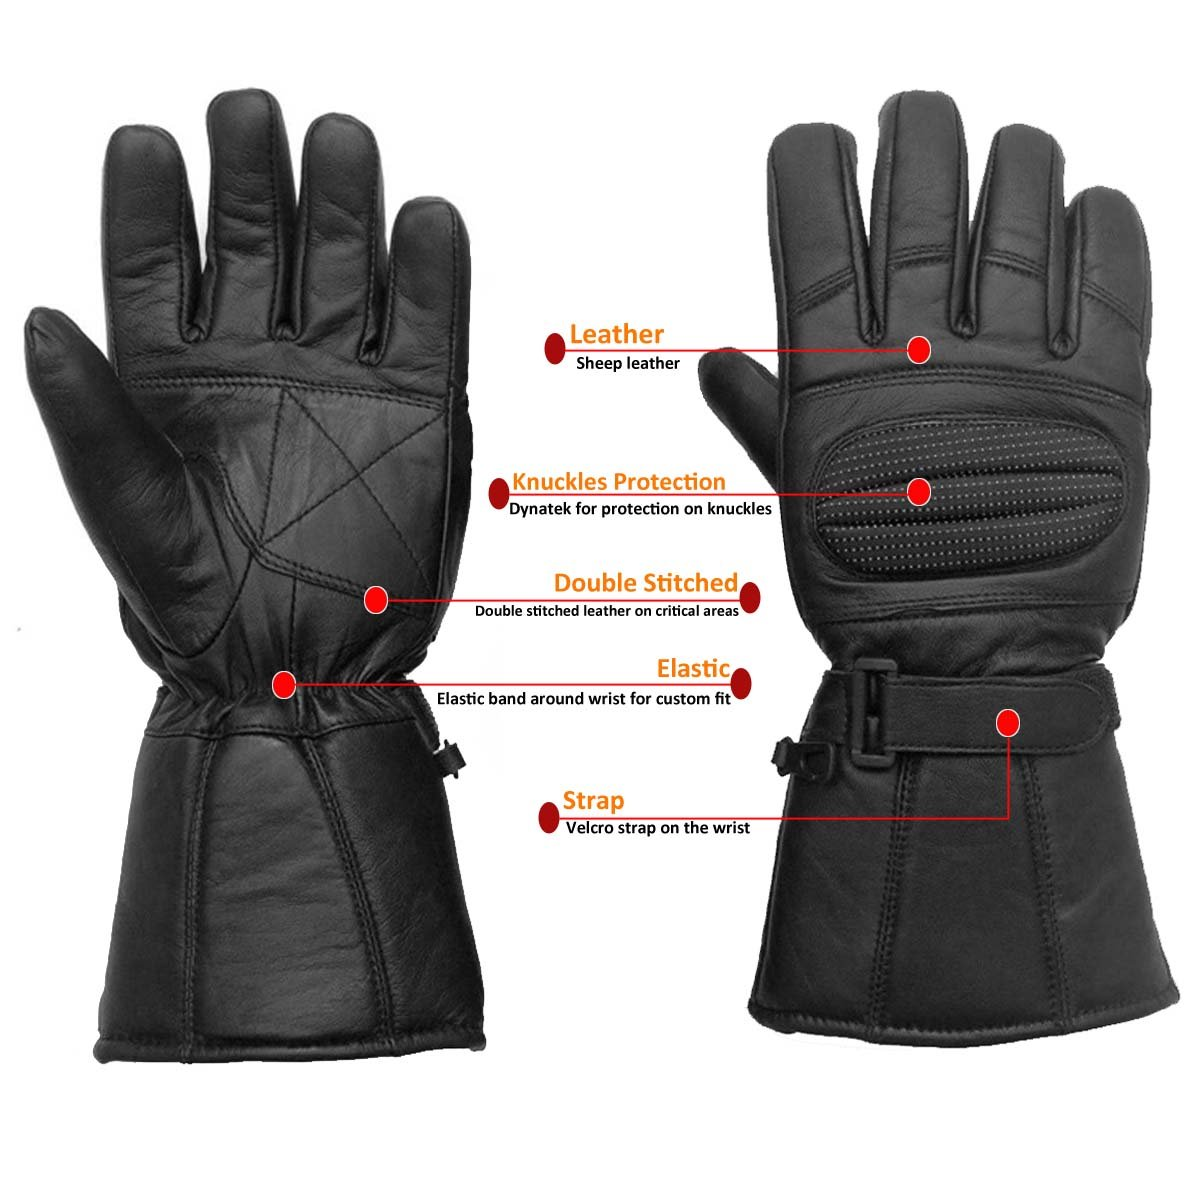 Motorcycle leather gloves amazon - Amazon Com Leather Gloves Gauntlet For Biker Motorcycle Scooter Heavy Duty Winter Black L Automotive